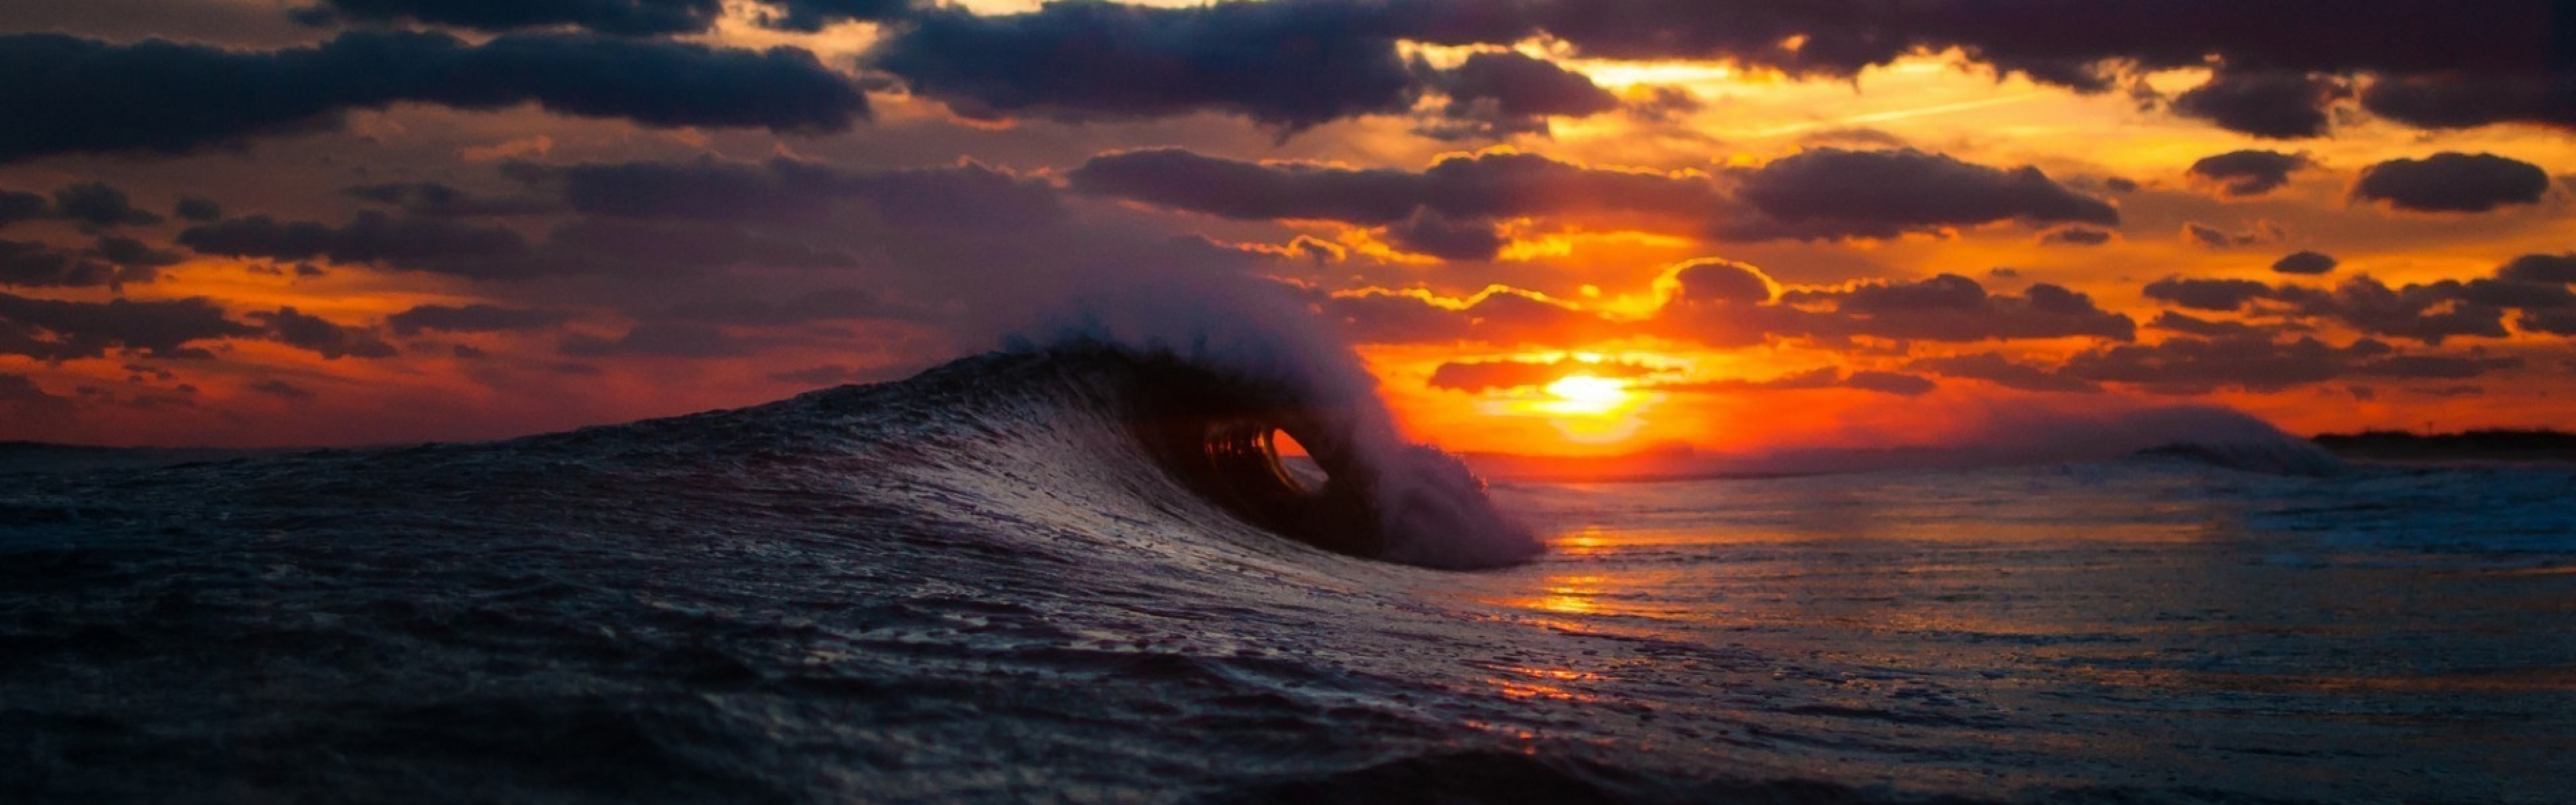 the gallery for gt surf wave wallpaper sunset